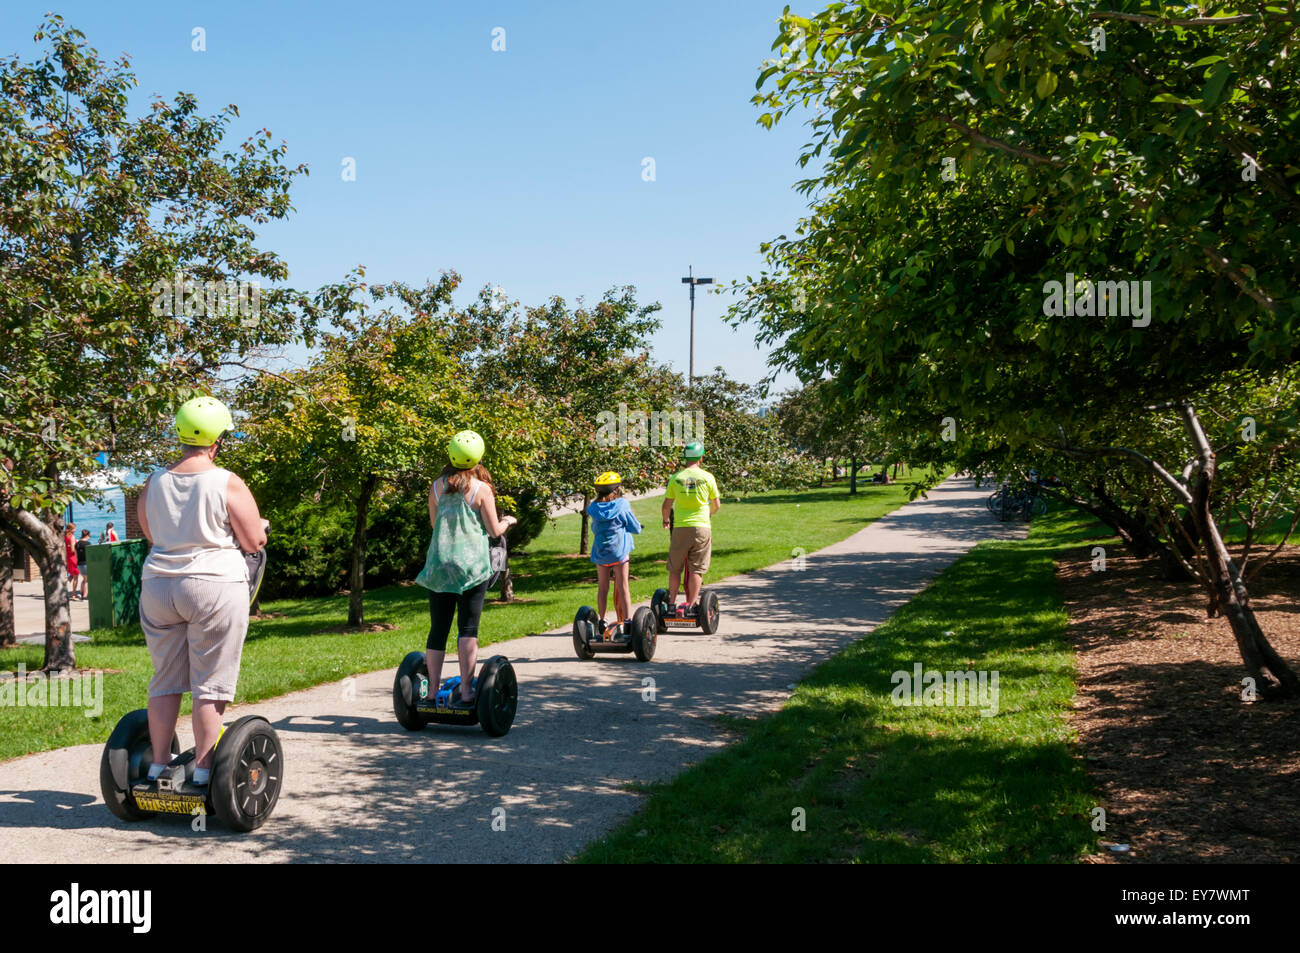 Tourists on a Segway tour in Grant Park, Chicago. Stock Photo